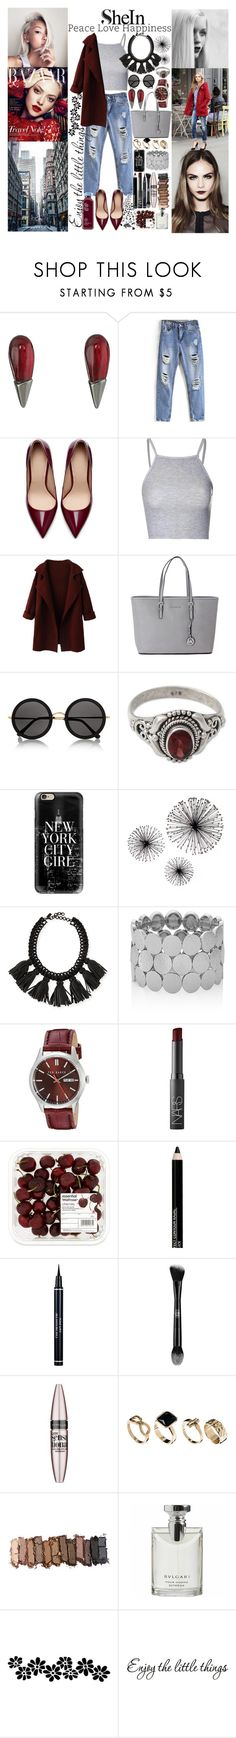 """""""Be you with shein"""" by inesramos-1 ❤ liked on Polyvore featuring Alexis Bittar, Zara, Glamorous, Michael Kors, The Row, NOVICA, Casetify, Cocoa, The Limited and Ted Baker"""